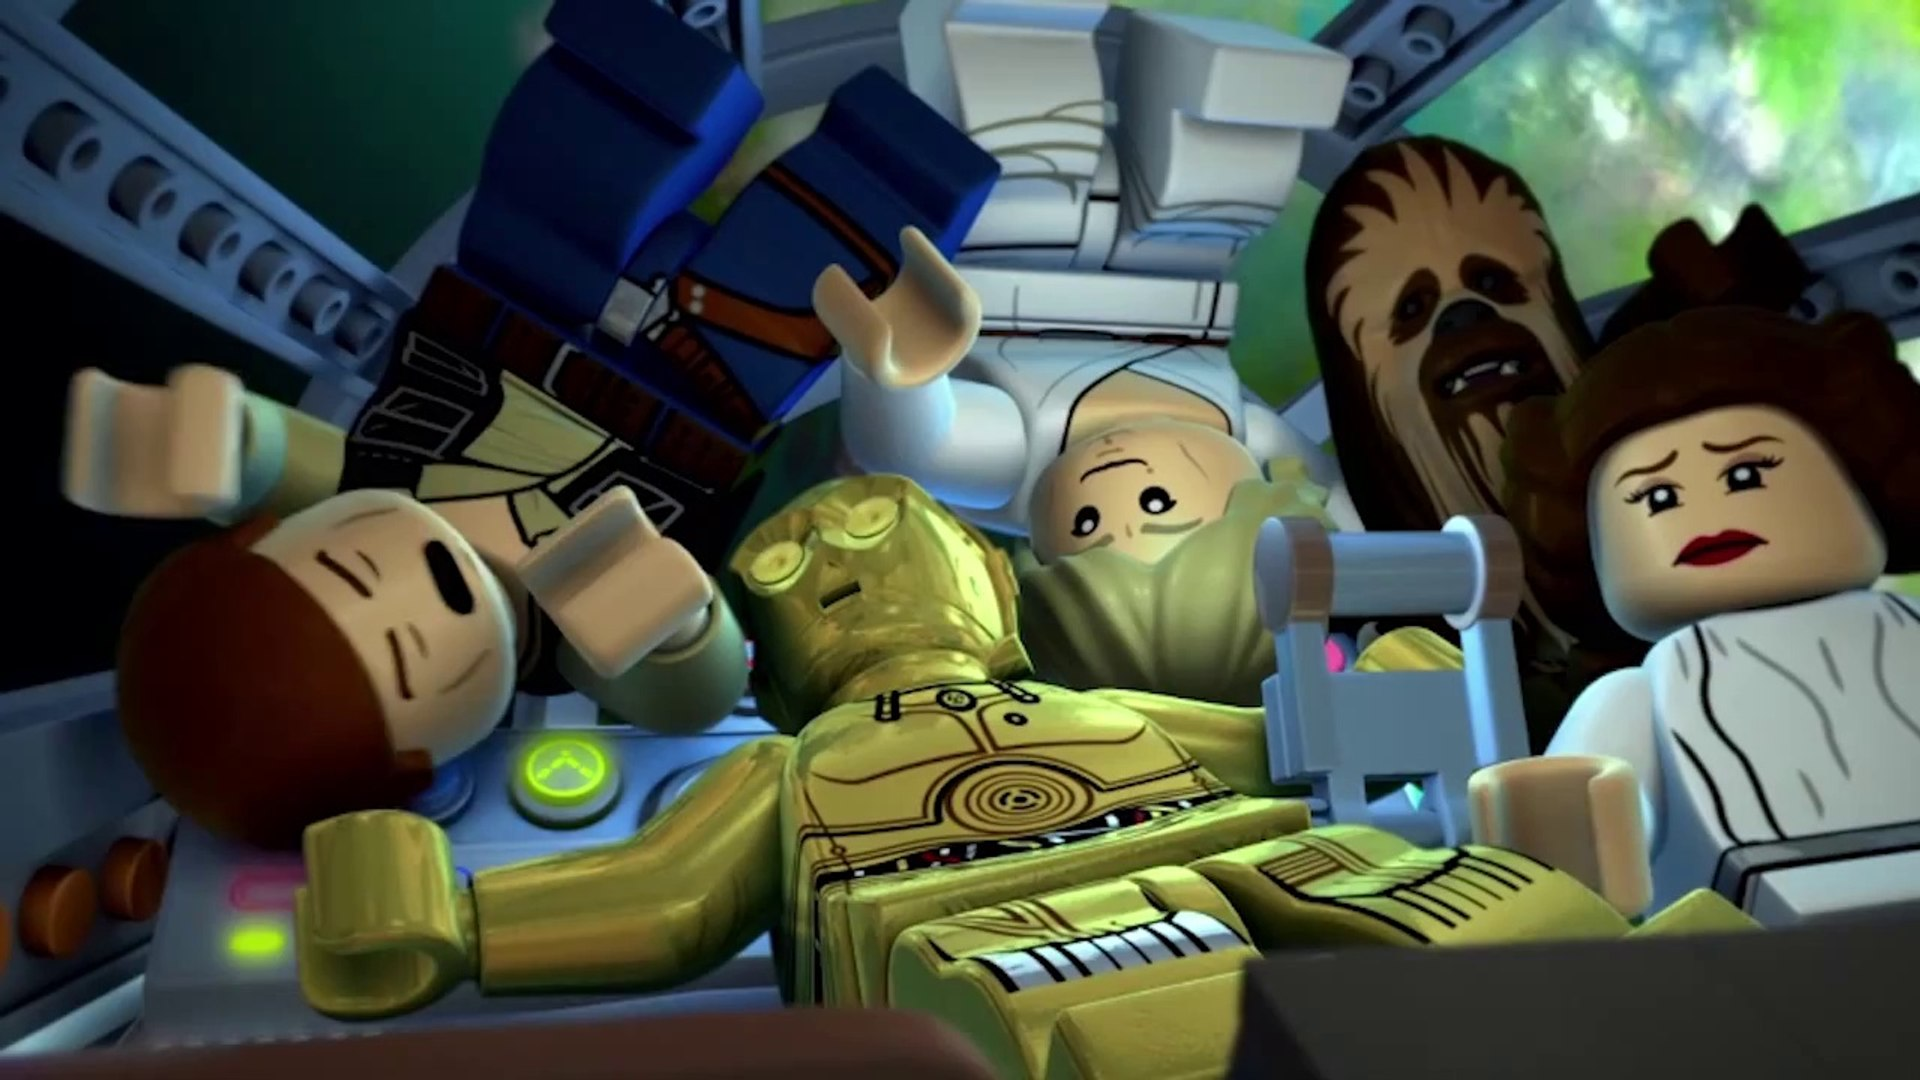 Lego Star Wars The New Yoda Chronicles Escape From The Jedi Temple Trailer